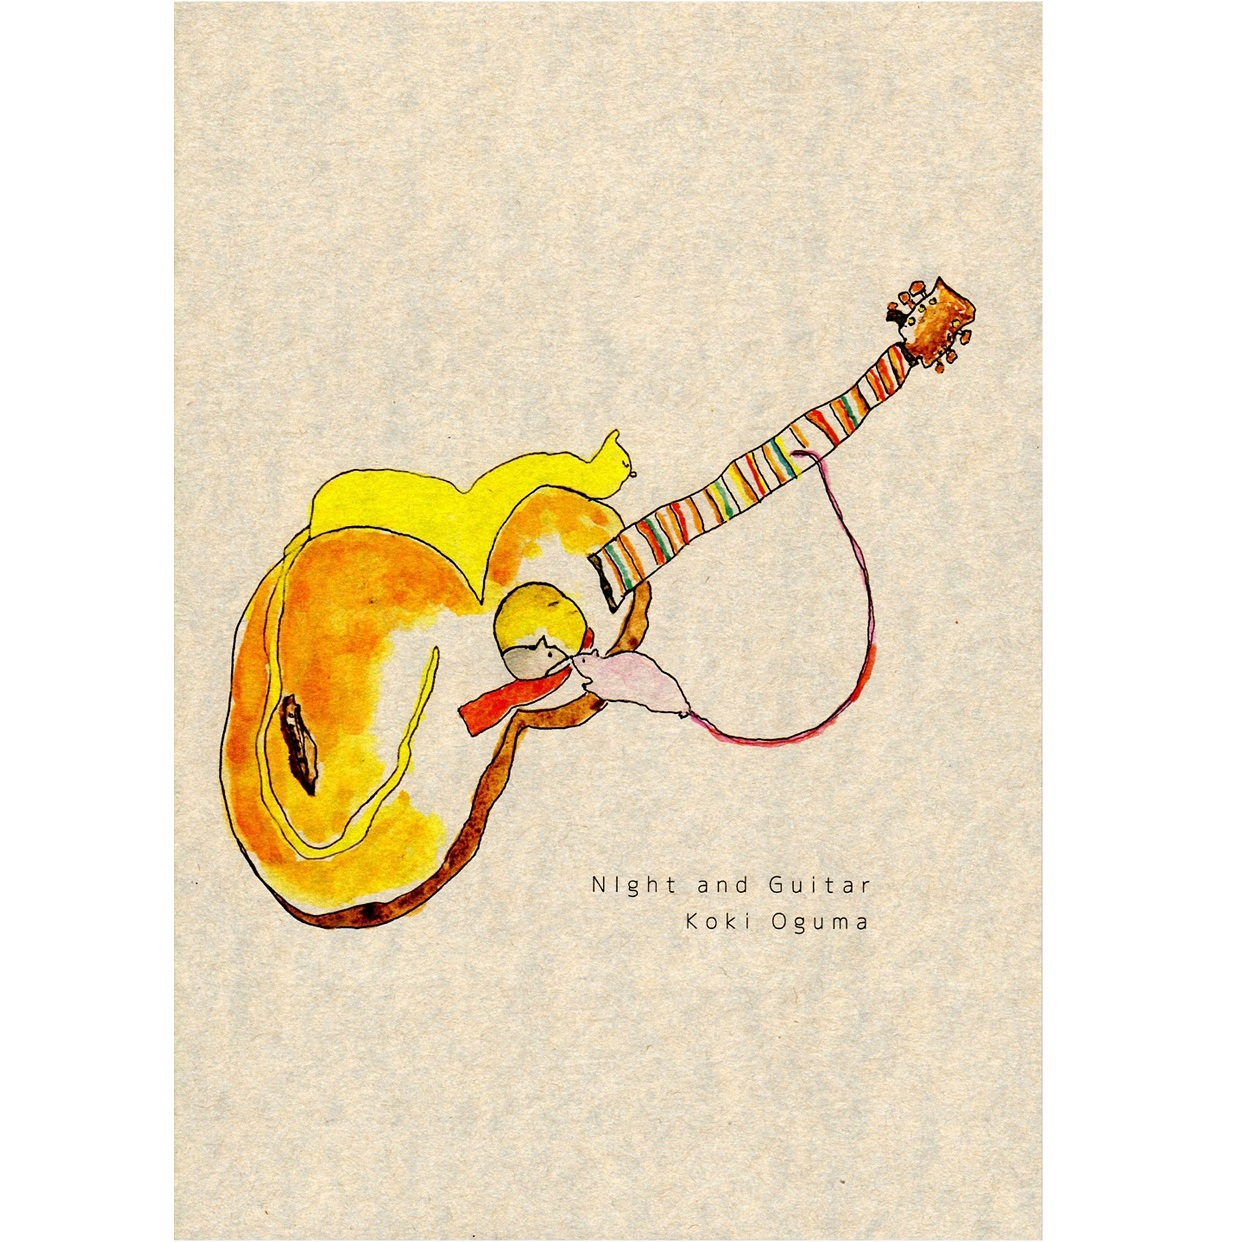 Night and Guitar